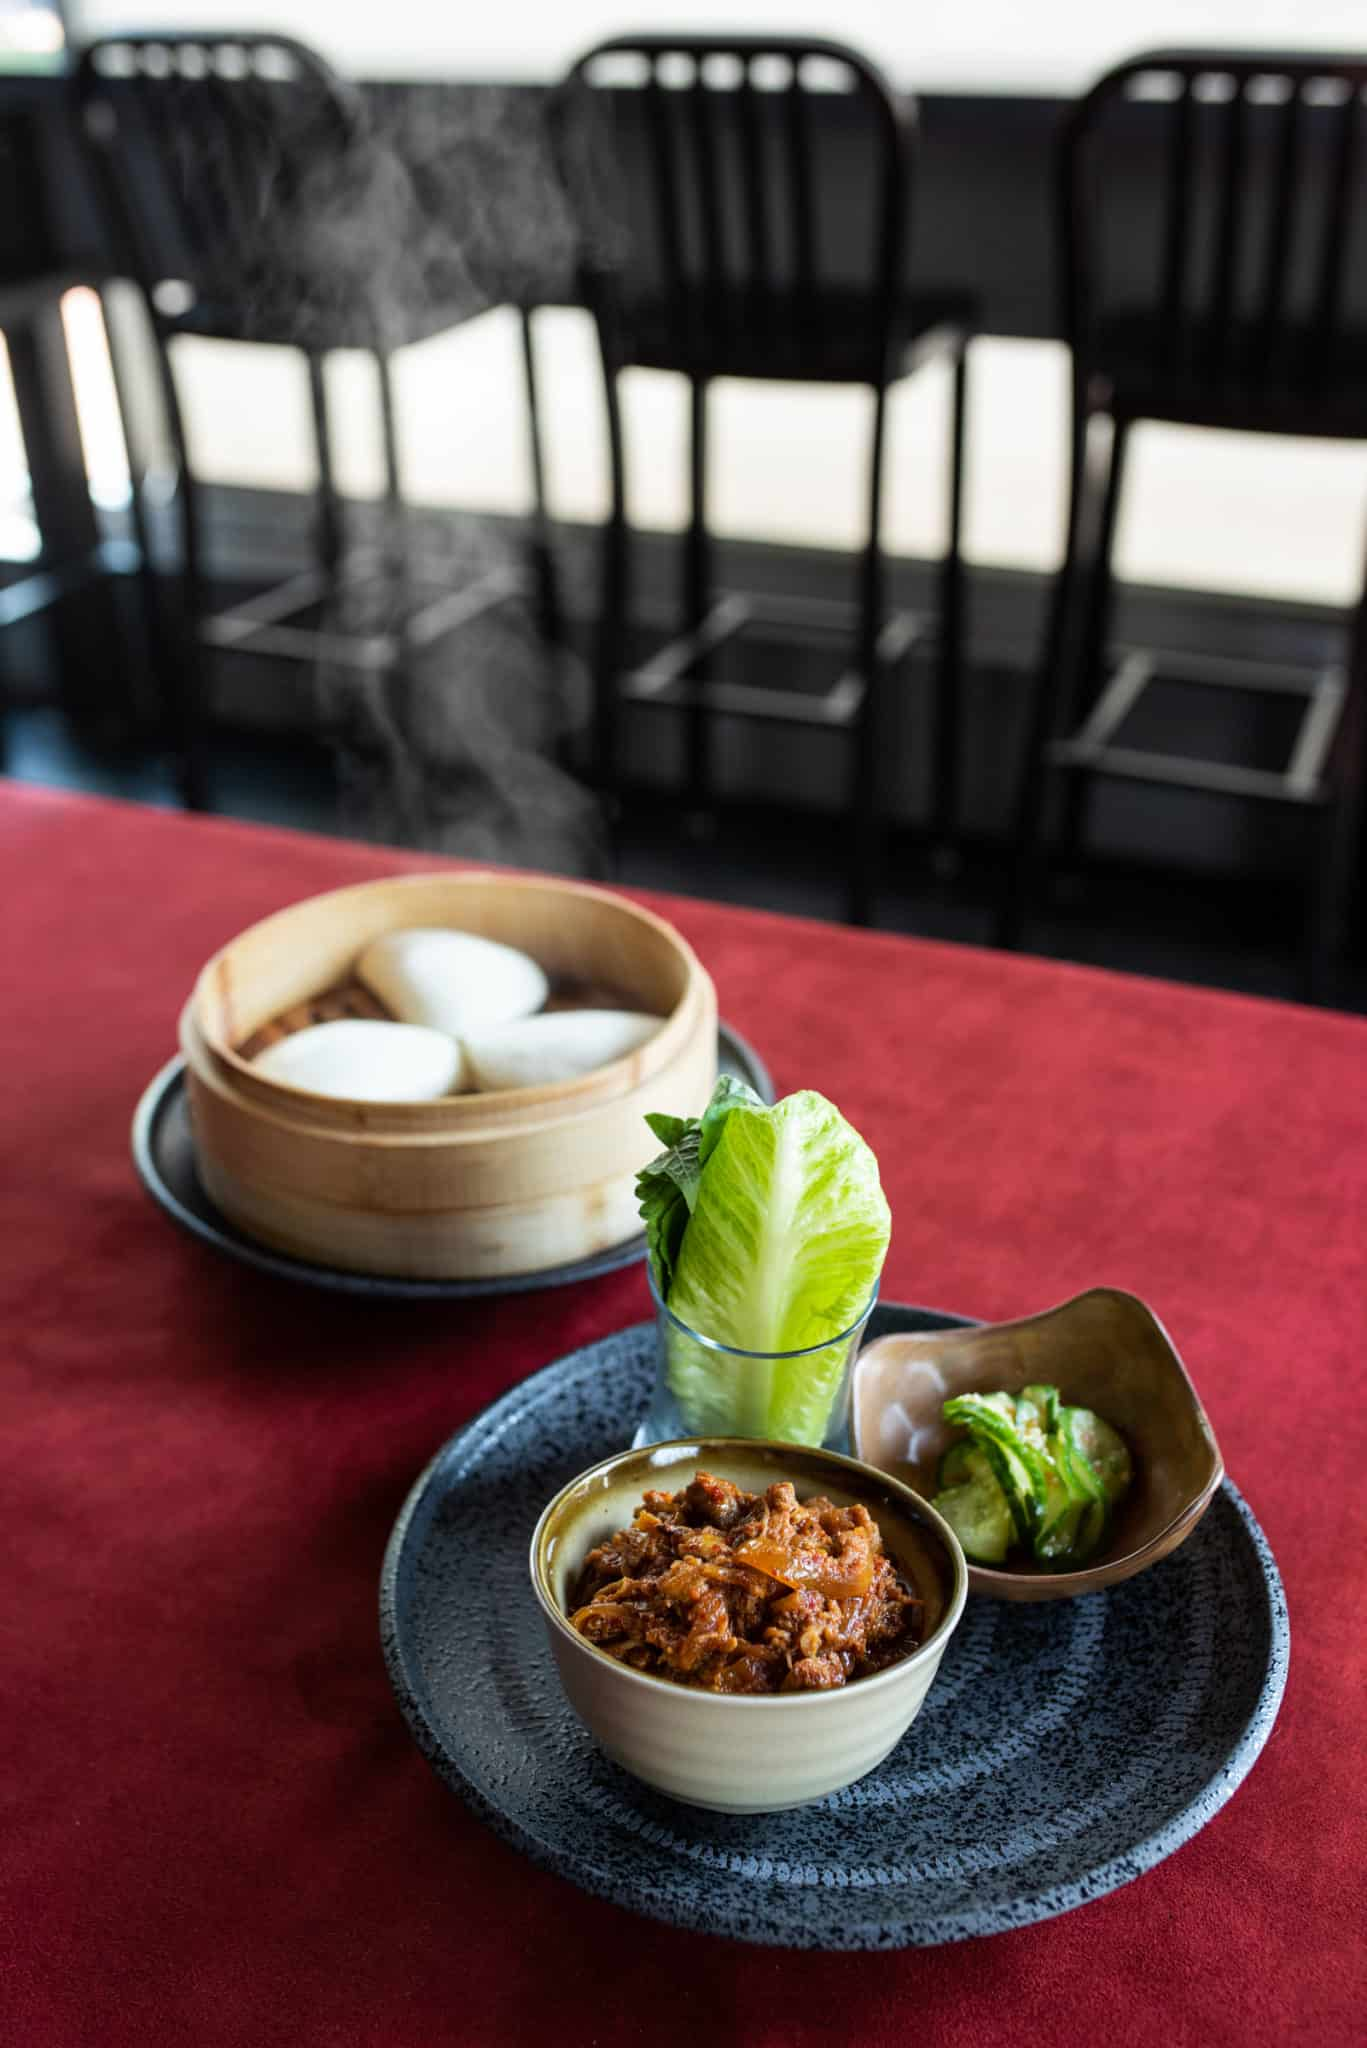 M Pocha's Spicy Pork with Steamed Buns